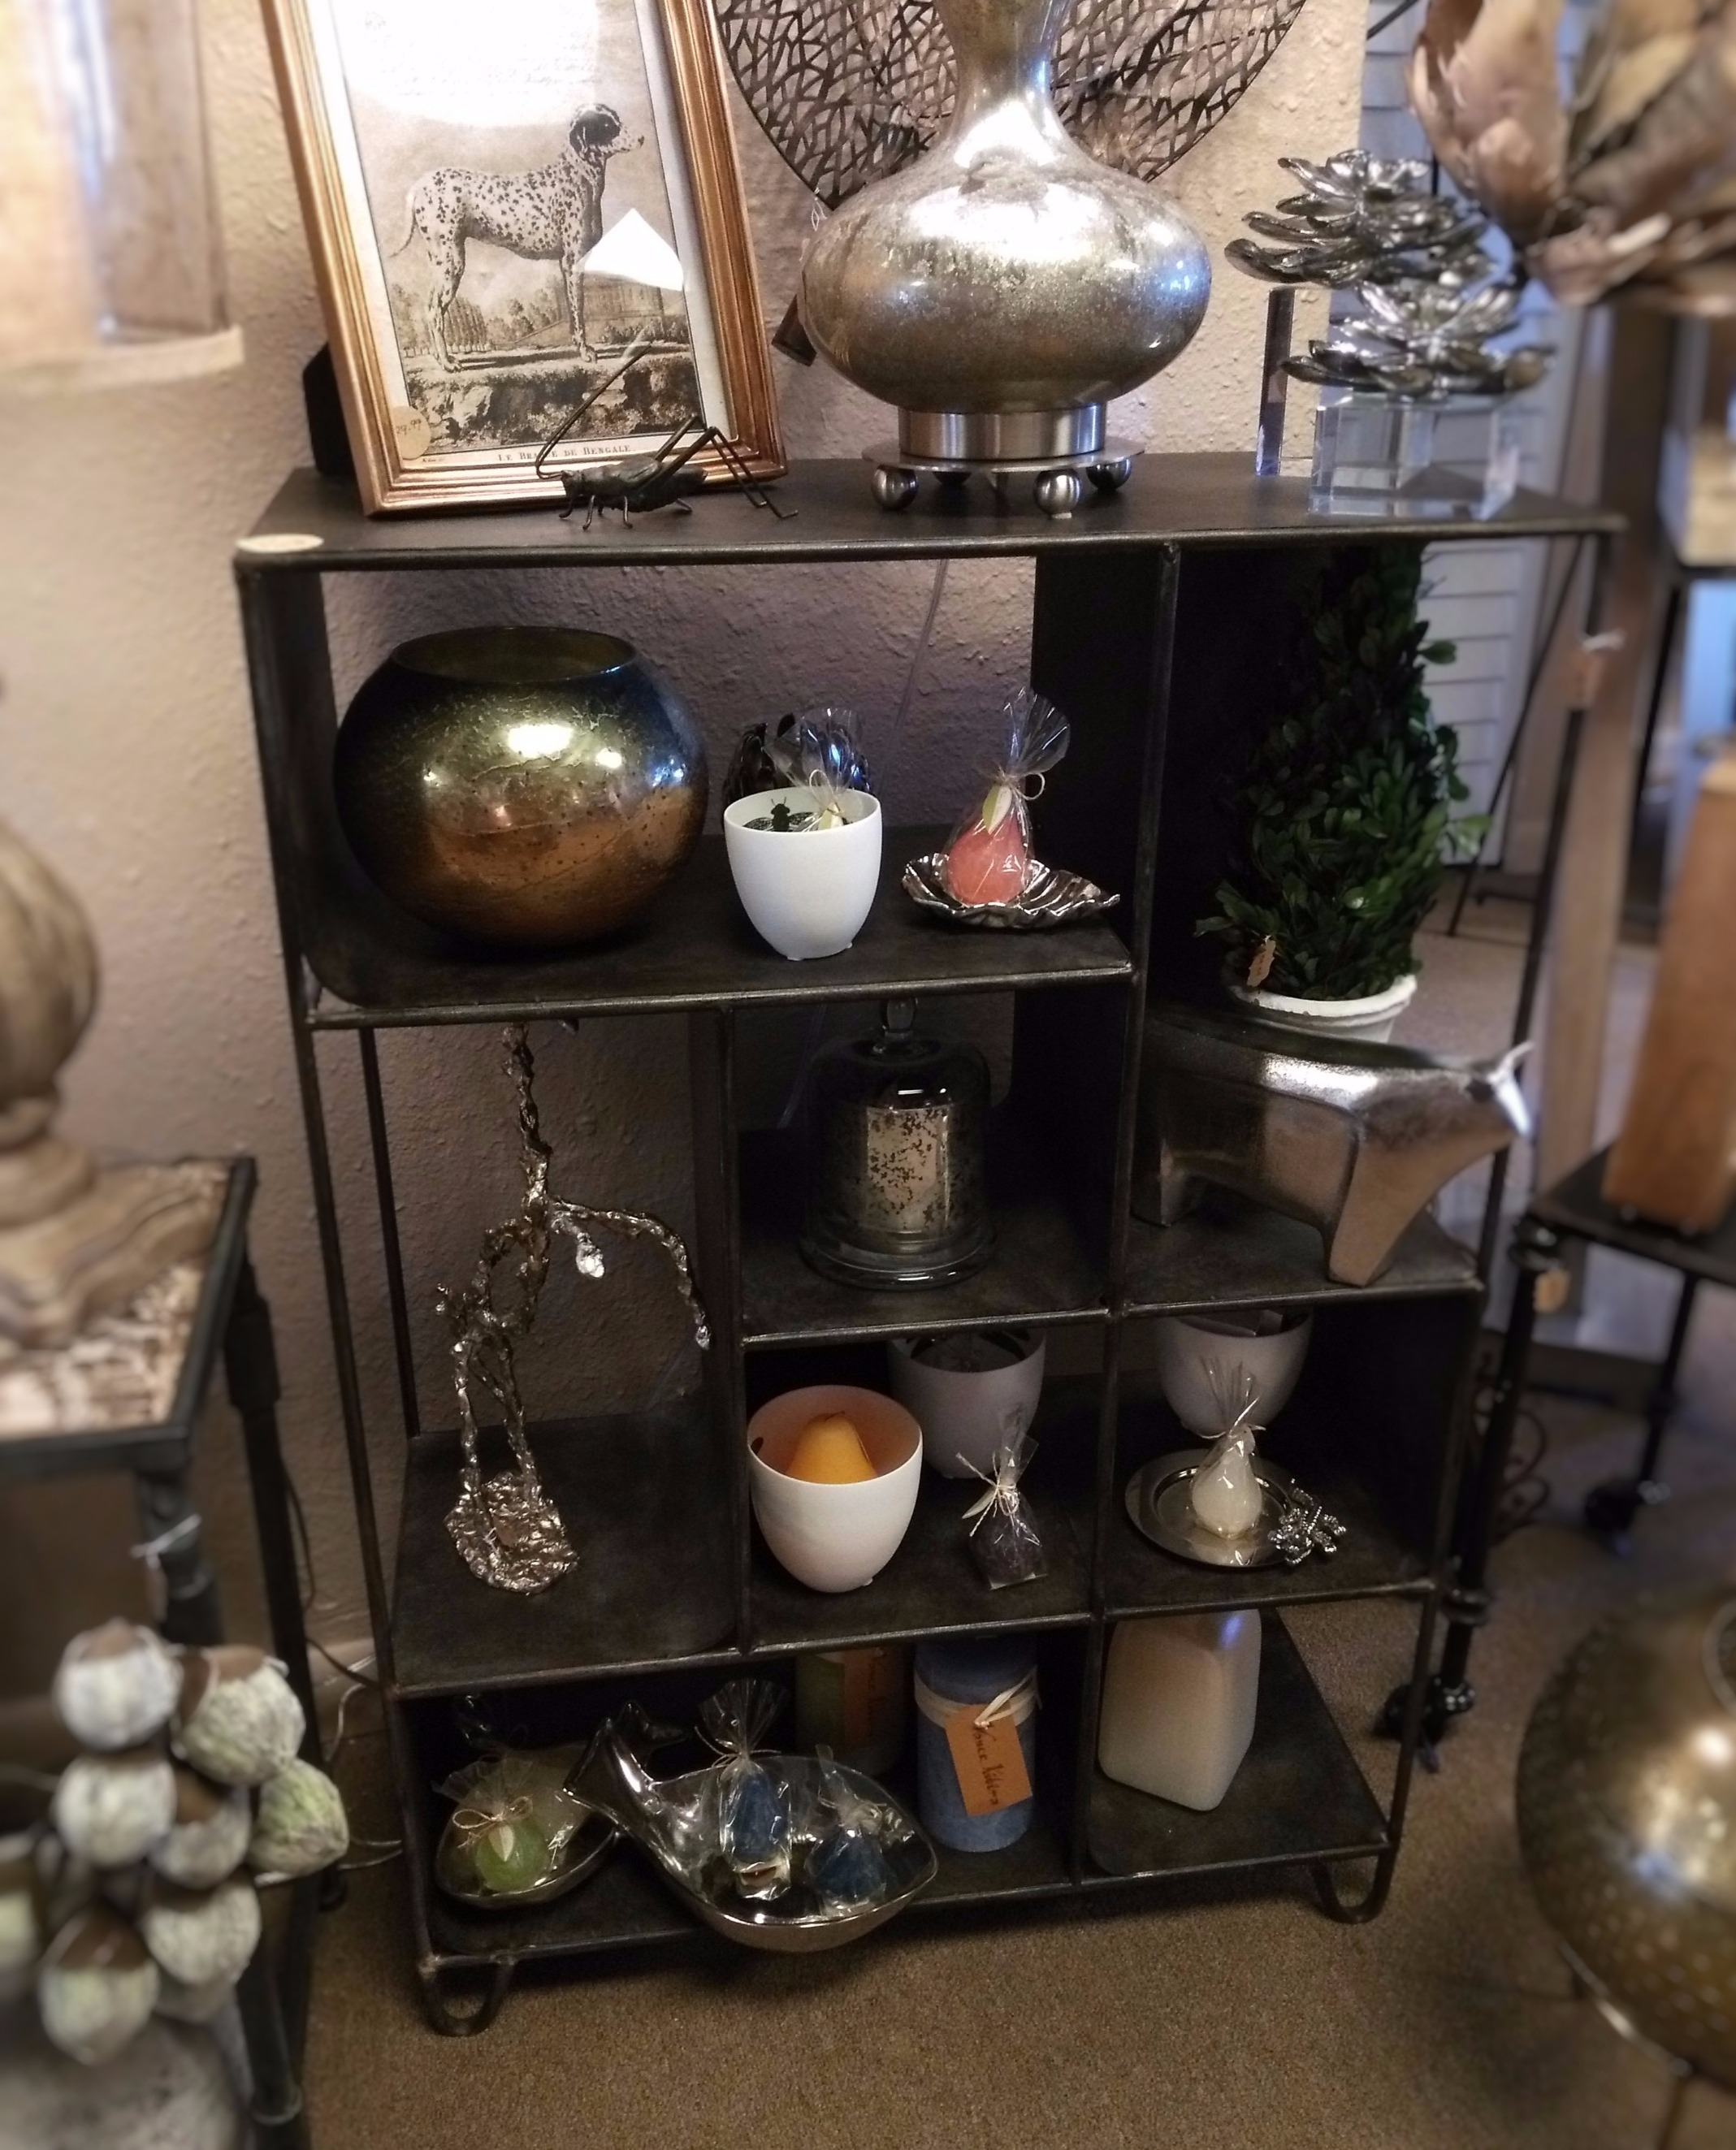 Shelving Units in many styles